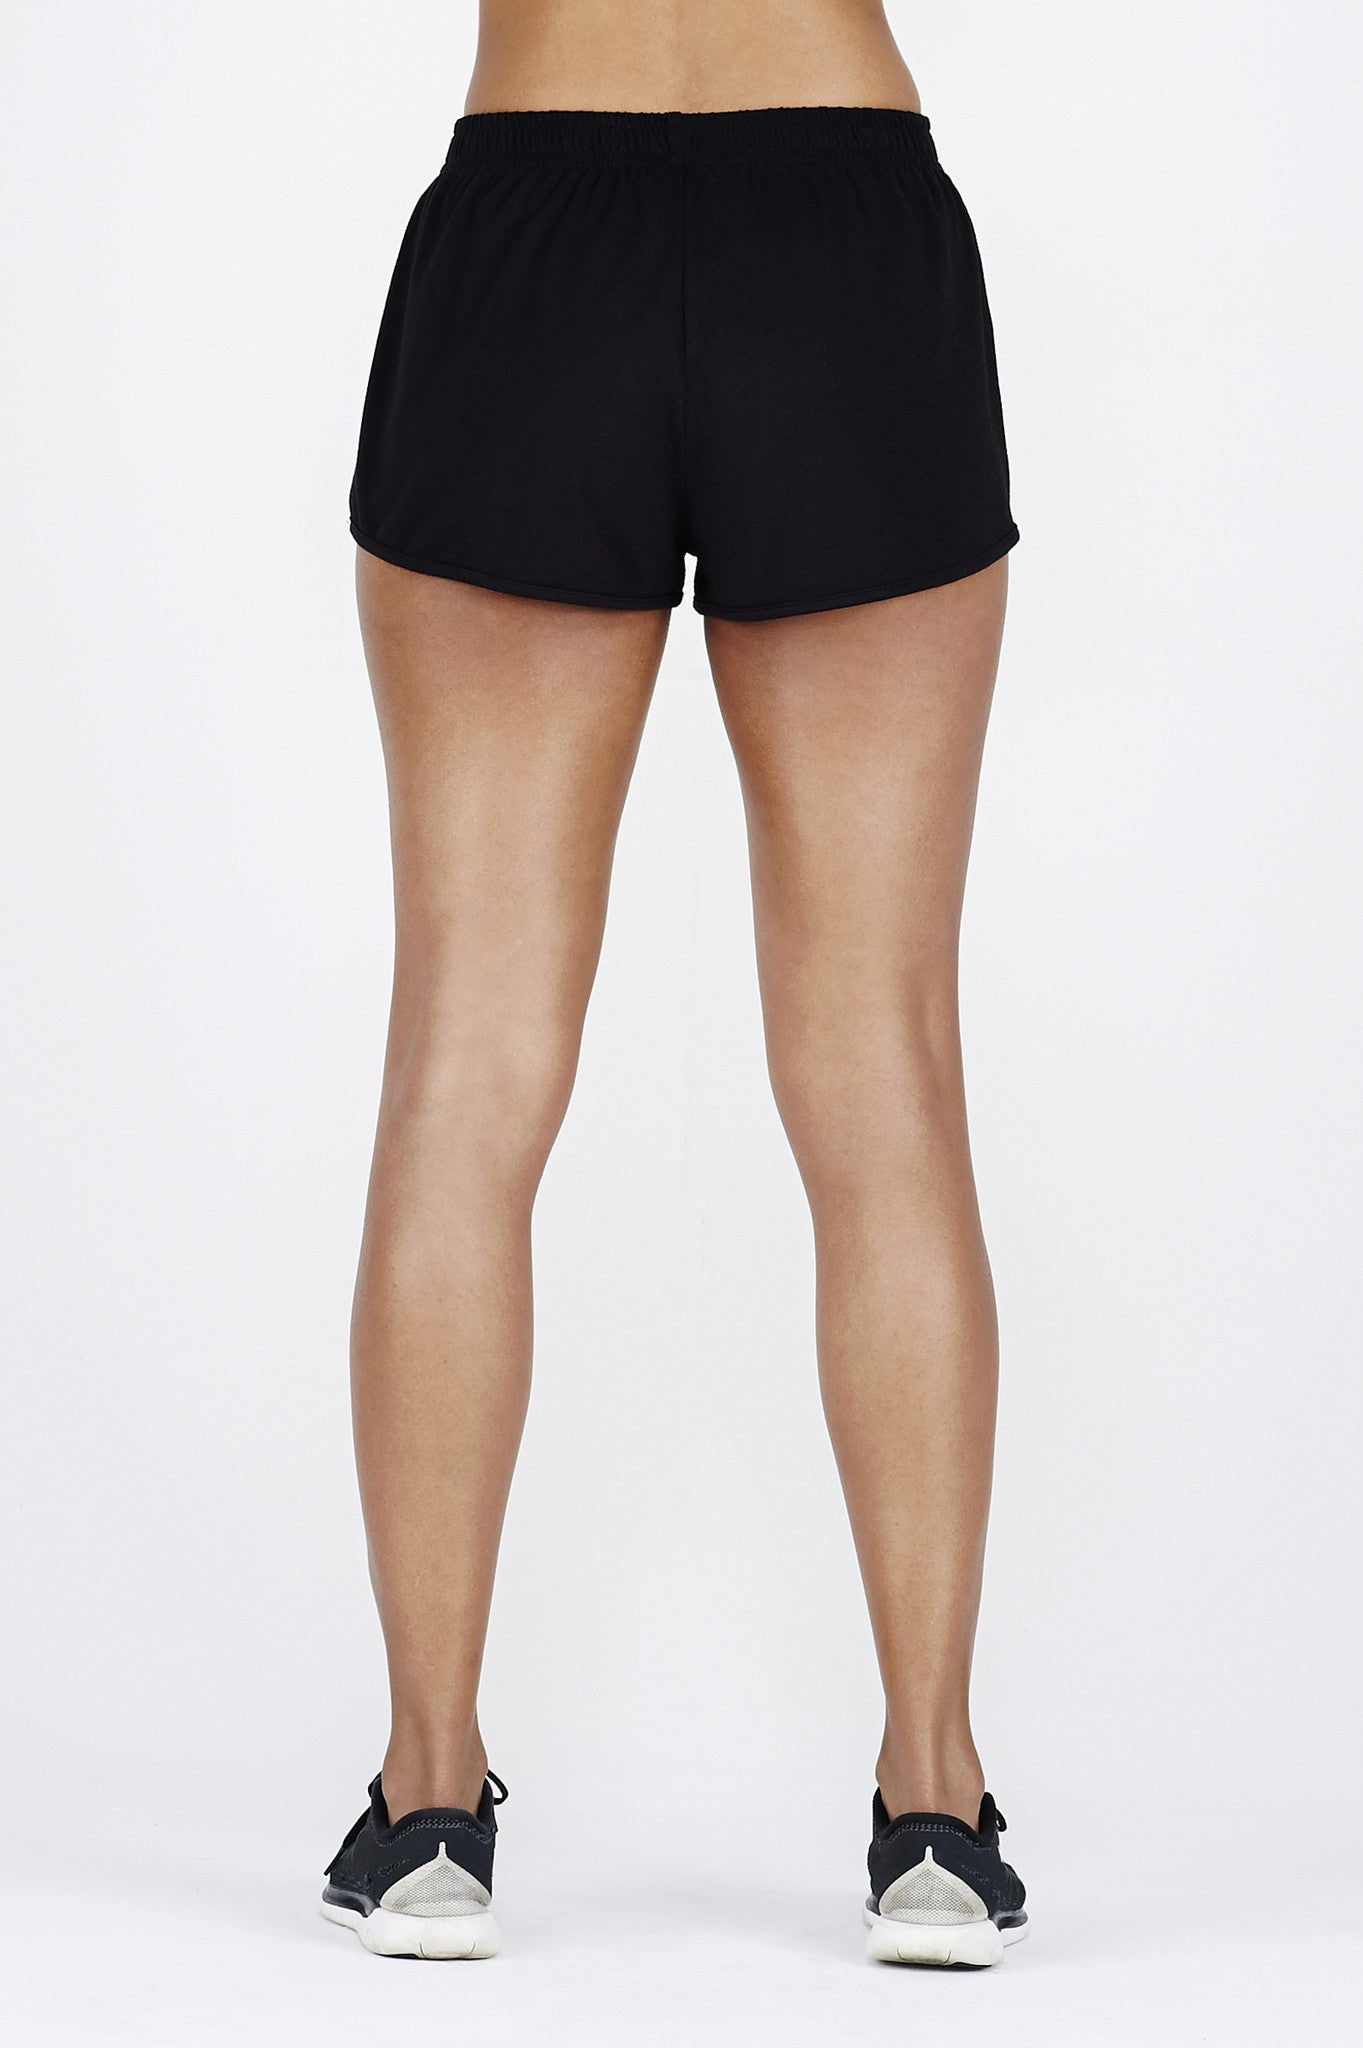 Woman's legs back wearing BAM.U bamboo black short shorts gym shorts